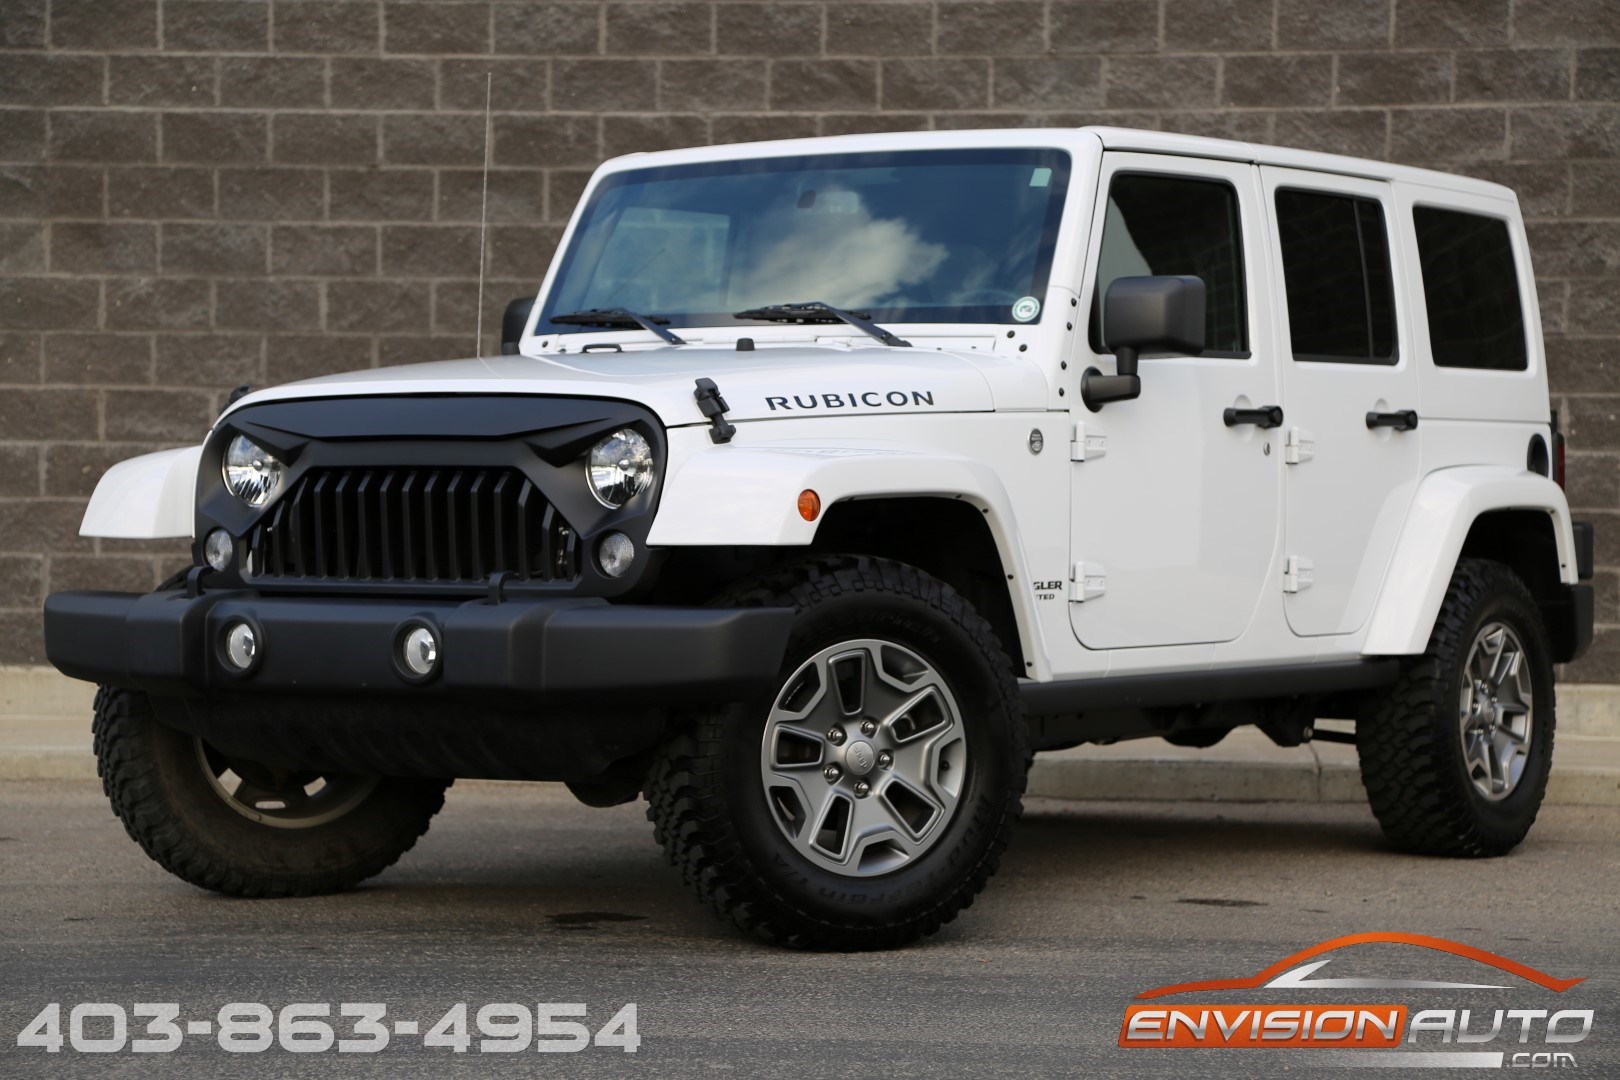 2015 jeep wrangler unlimited rubicon 6 speed manual spotless history envision auto. Black Bedroom Furniture Sets. Home Design Ideas